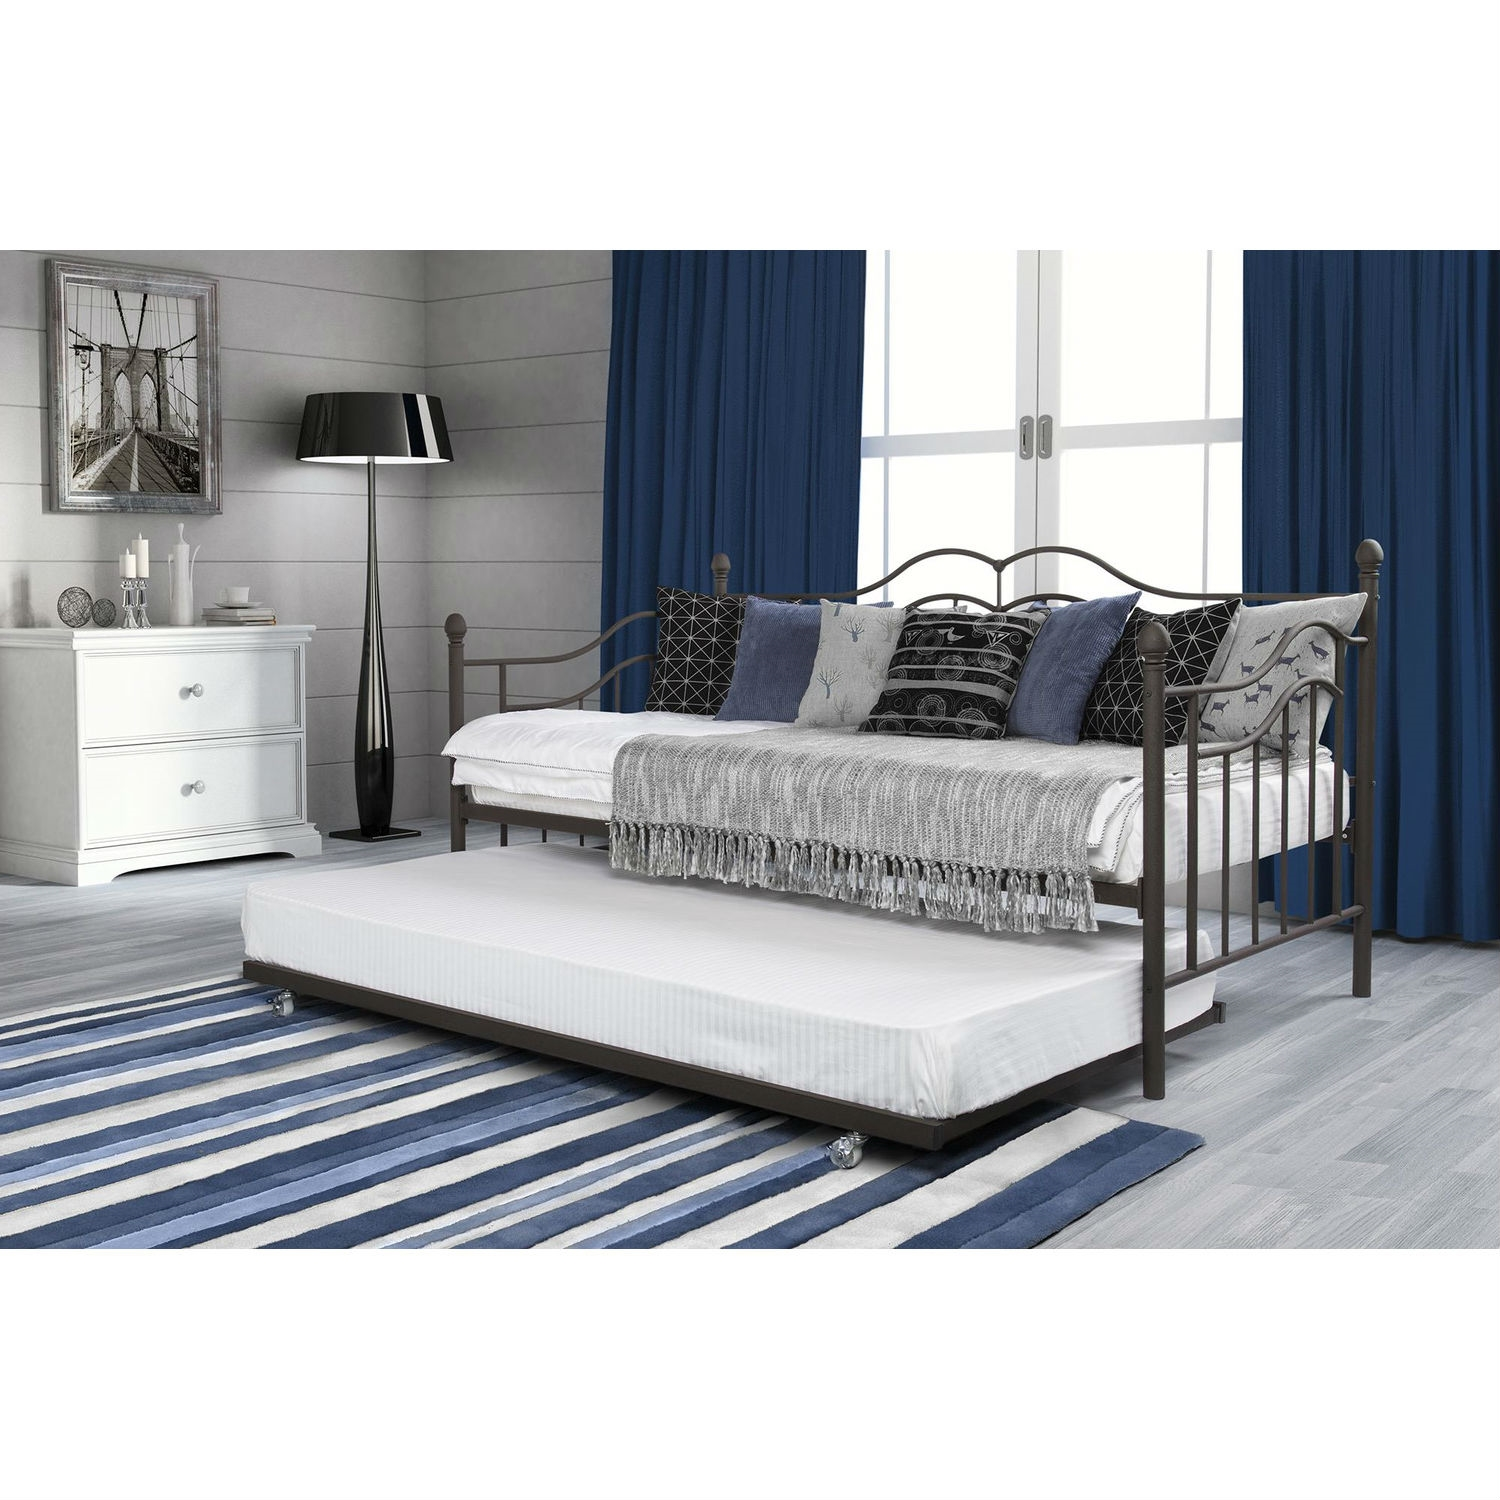 Twin size Daybeds with Trundle Bed in Brushed Bronze Metal Finish - Twin Size Daybeds With Trundle Bed In Brushed Bronze Metal Finish